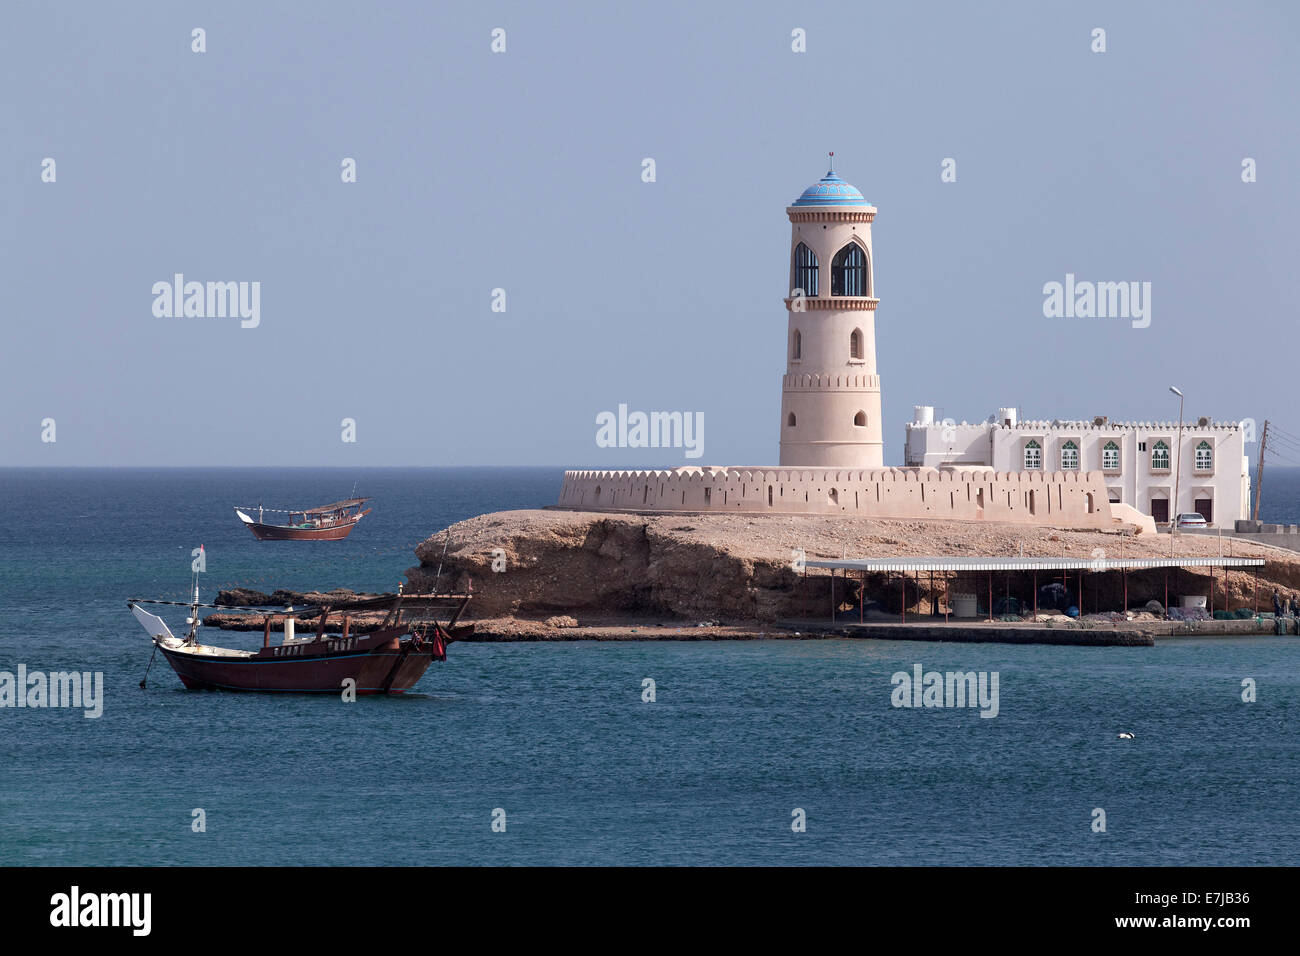 Dhow-ship in front of a lighthouse, Al Ayjah, Sur, Ash Sharqiyah province, Sultanate of Oman, Arabian Peninsula - Stock Image